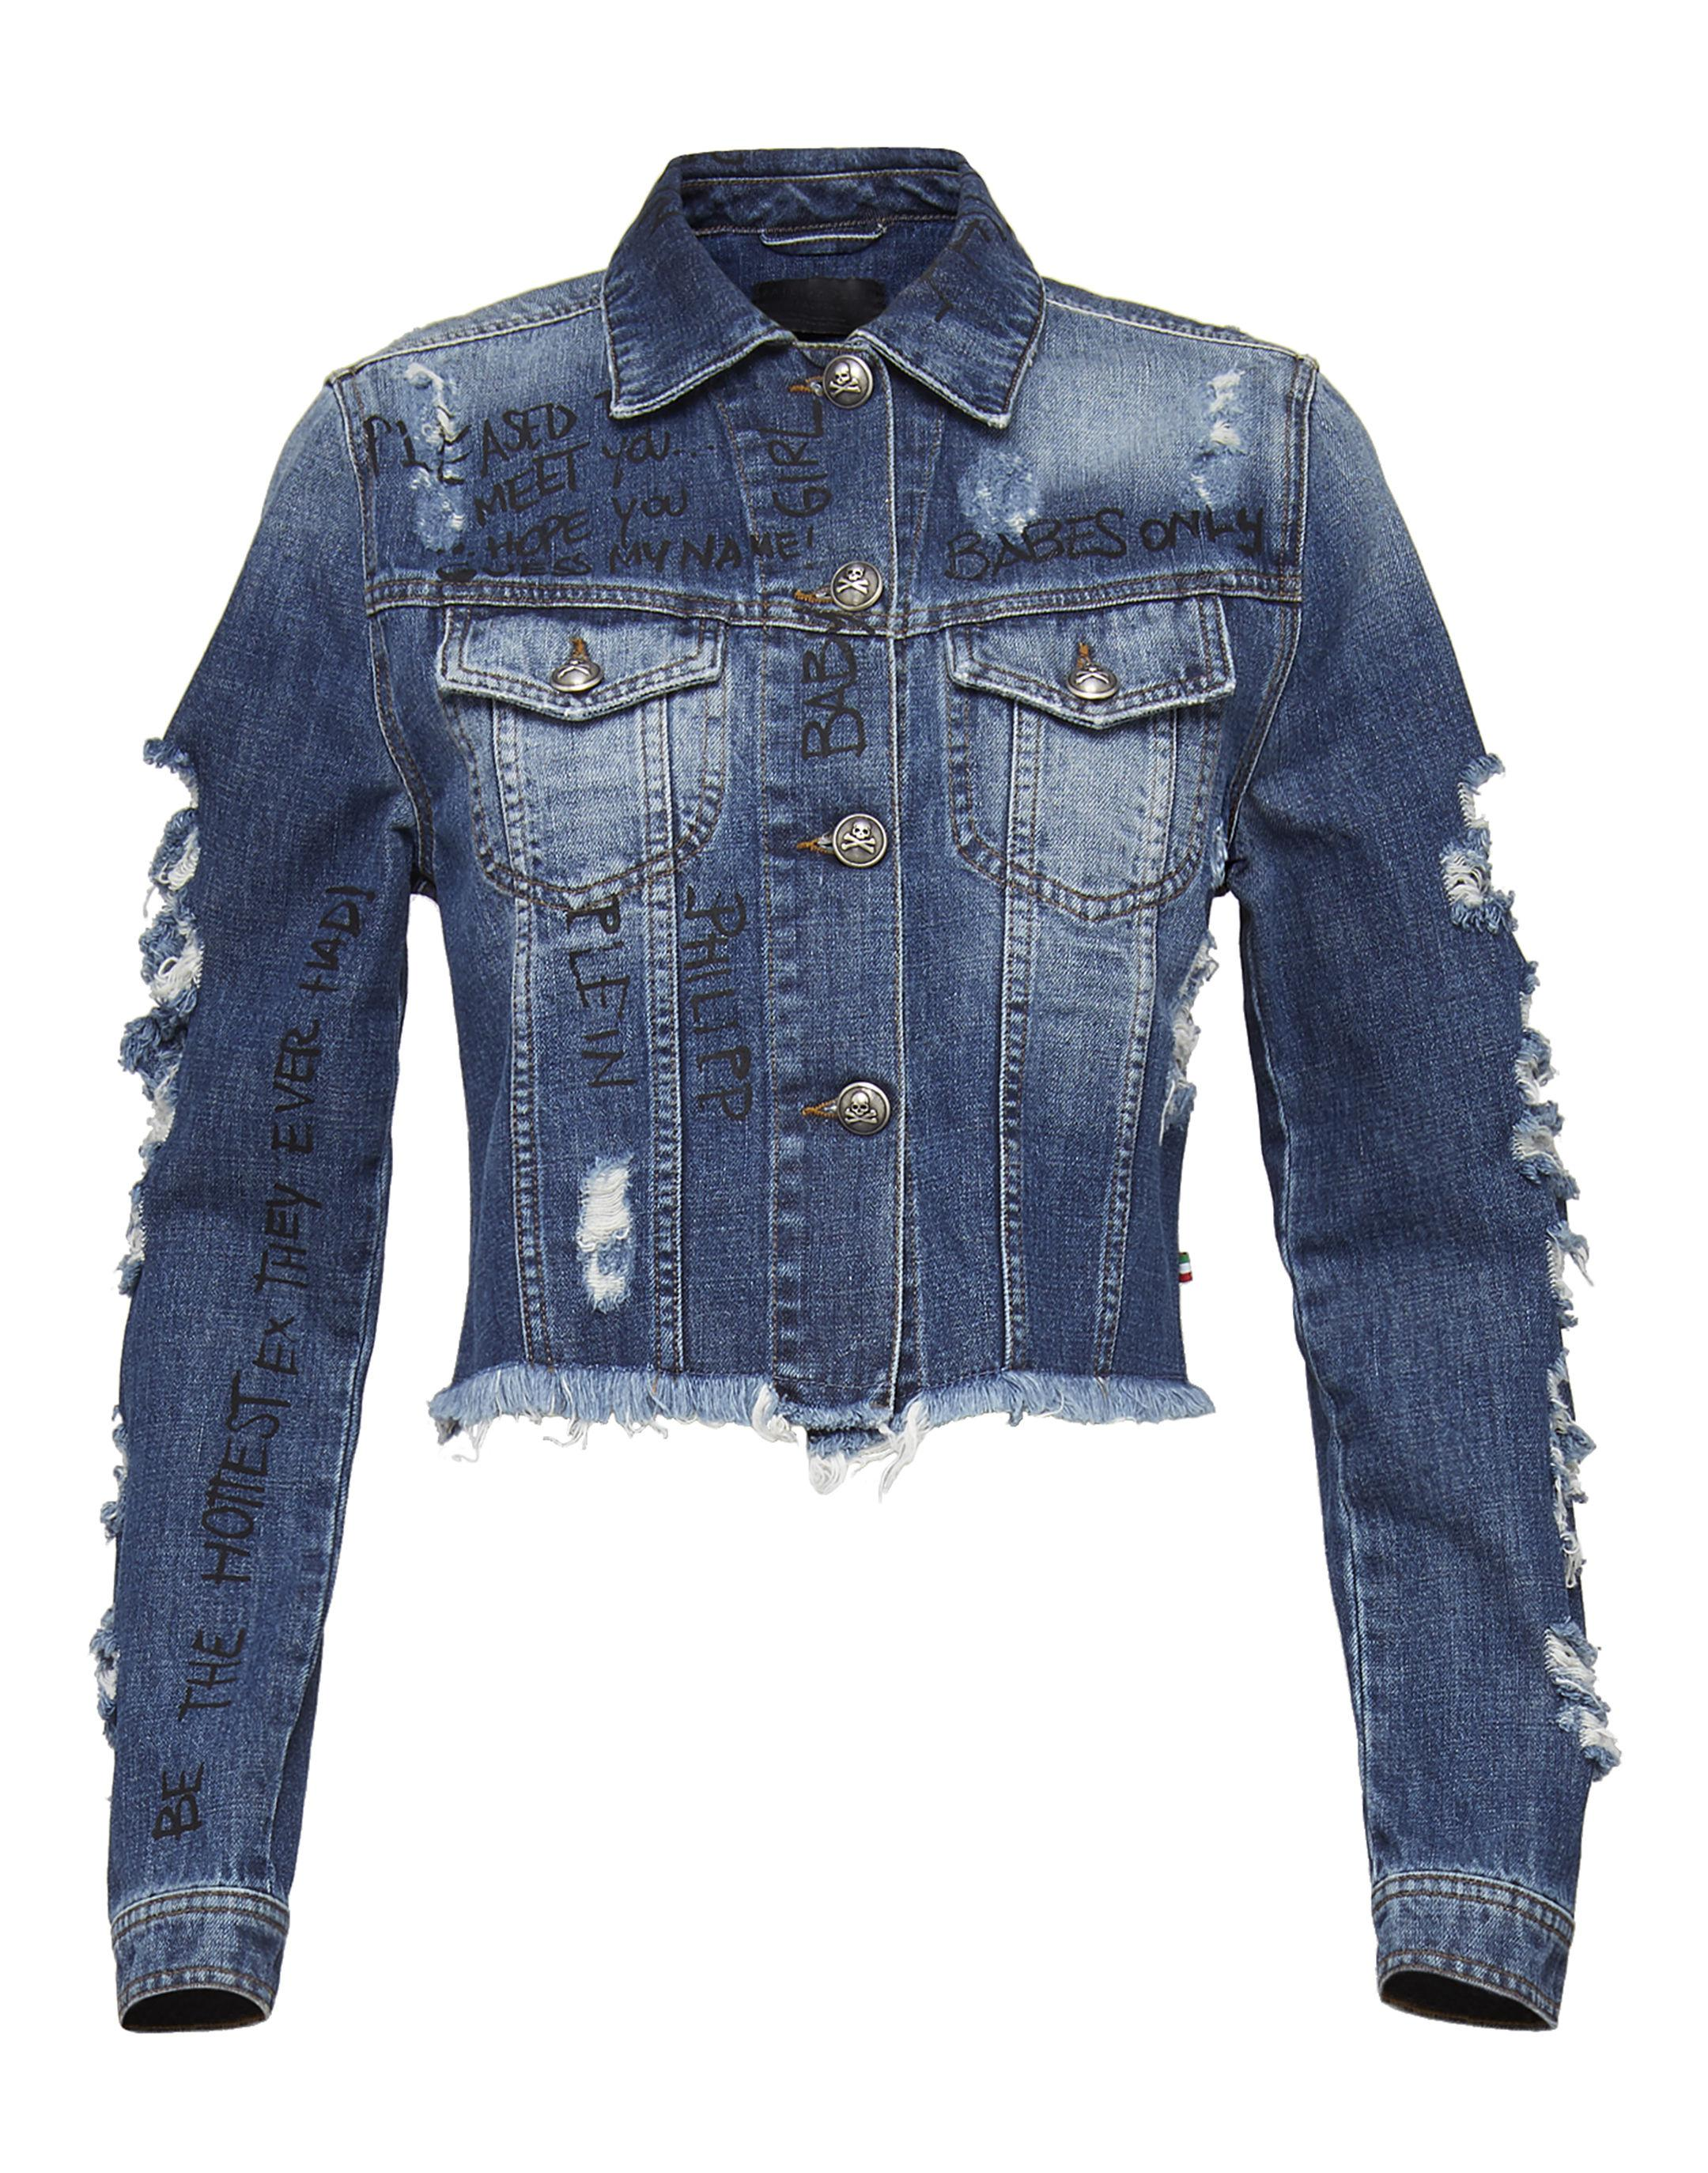 9b3afda9b91 Lyst - Philipp Plein Denim Jacket